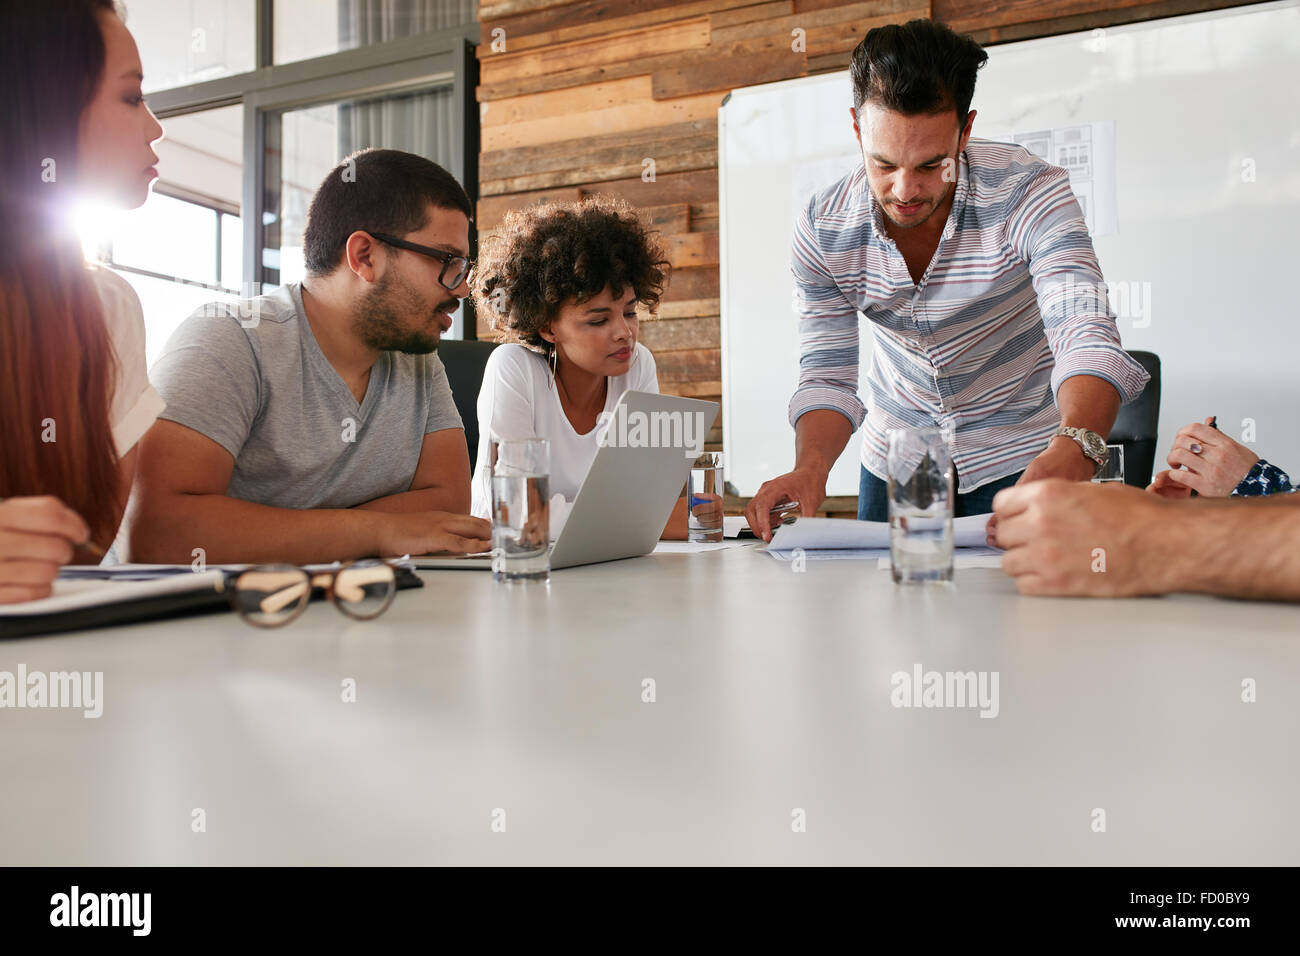 Young man presenting is ideas to colleagues during meeting in conference room. Leader showing business plan to colleagues - Stock Image